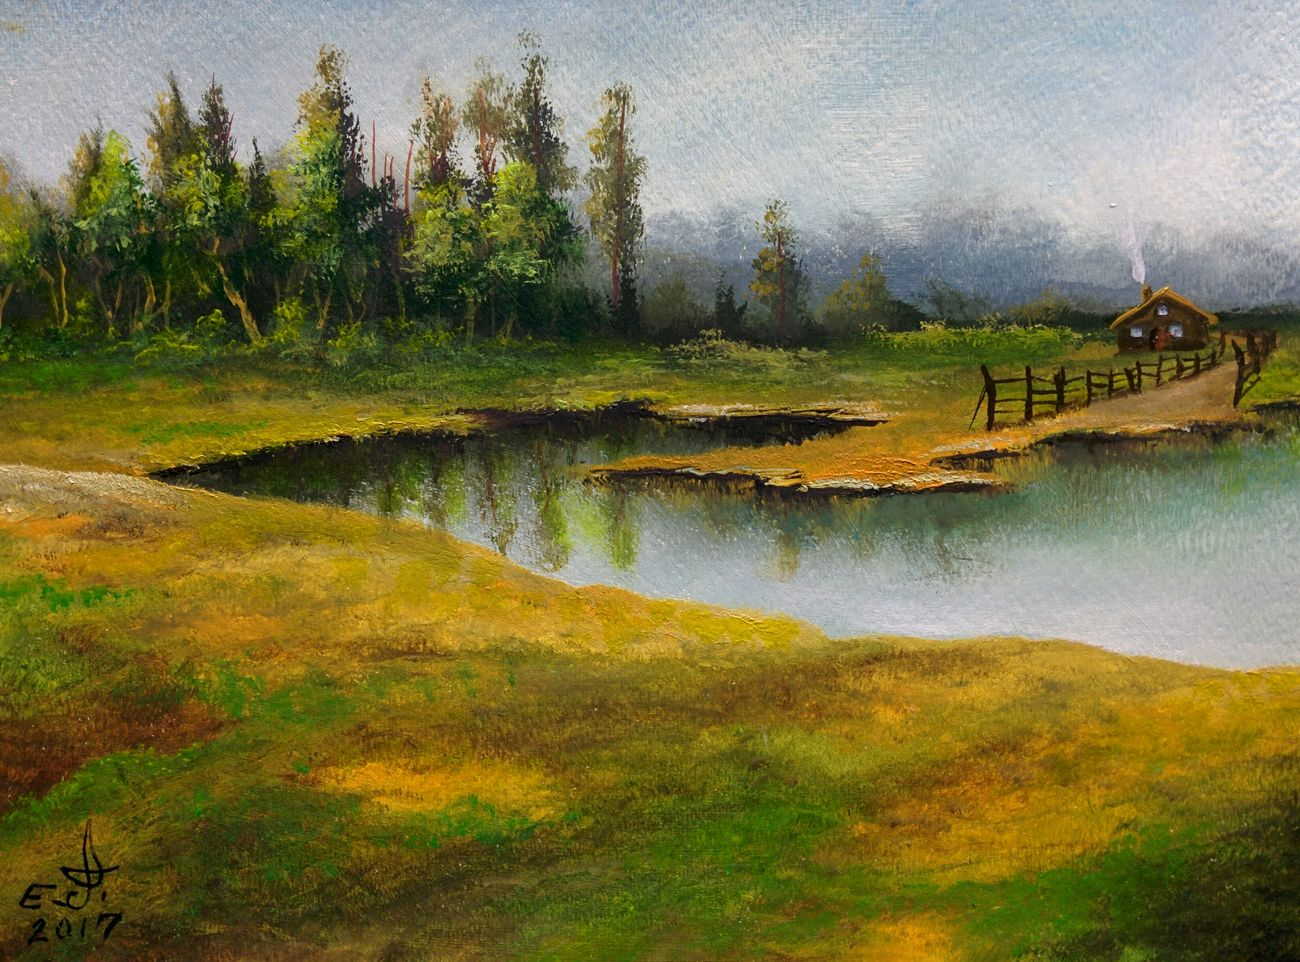 "The little house by the lake,oil on canvas 14""_20"", Nature Scenics Lake House  Beauty In Nature Sky My Landscape Collection. Art Art, Drawing, Creativity Fine Art ArtWork Oil Painting Drawing My Art Collection Plant Tree Original Art My Bestfriend ❤ Love♥ Friendship. ♡   Vilagale with My Best Friends ❤"